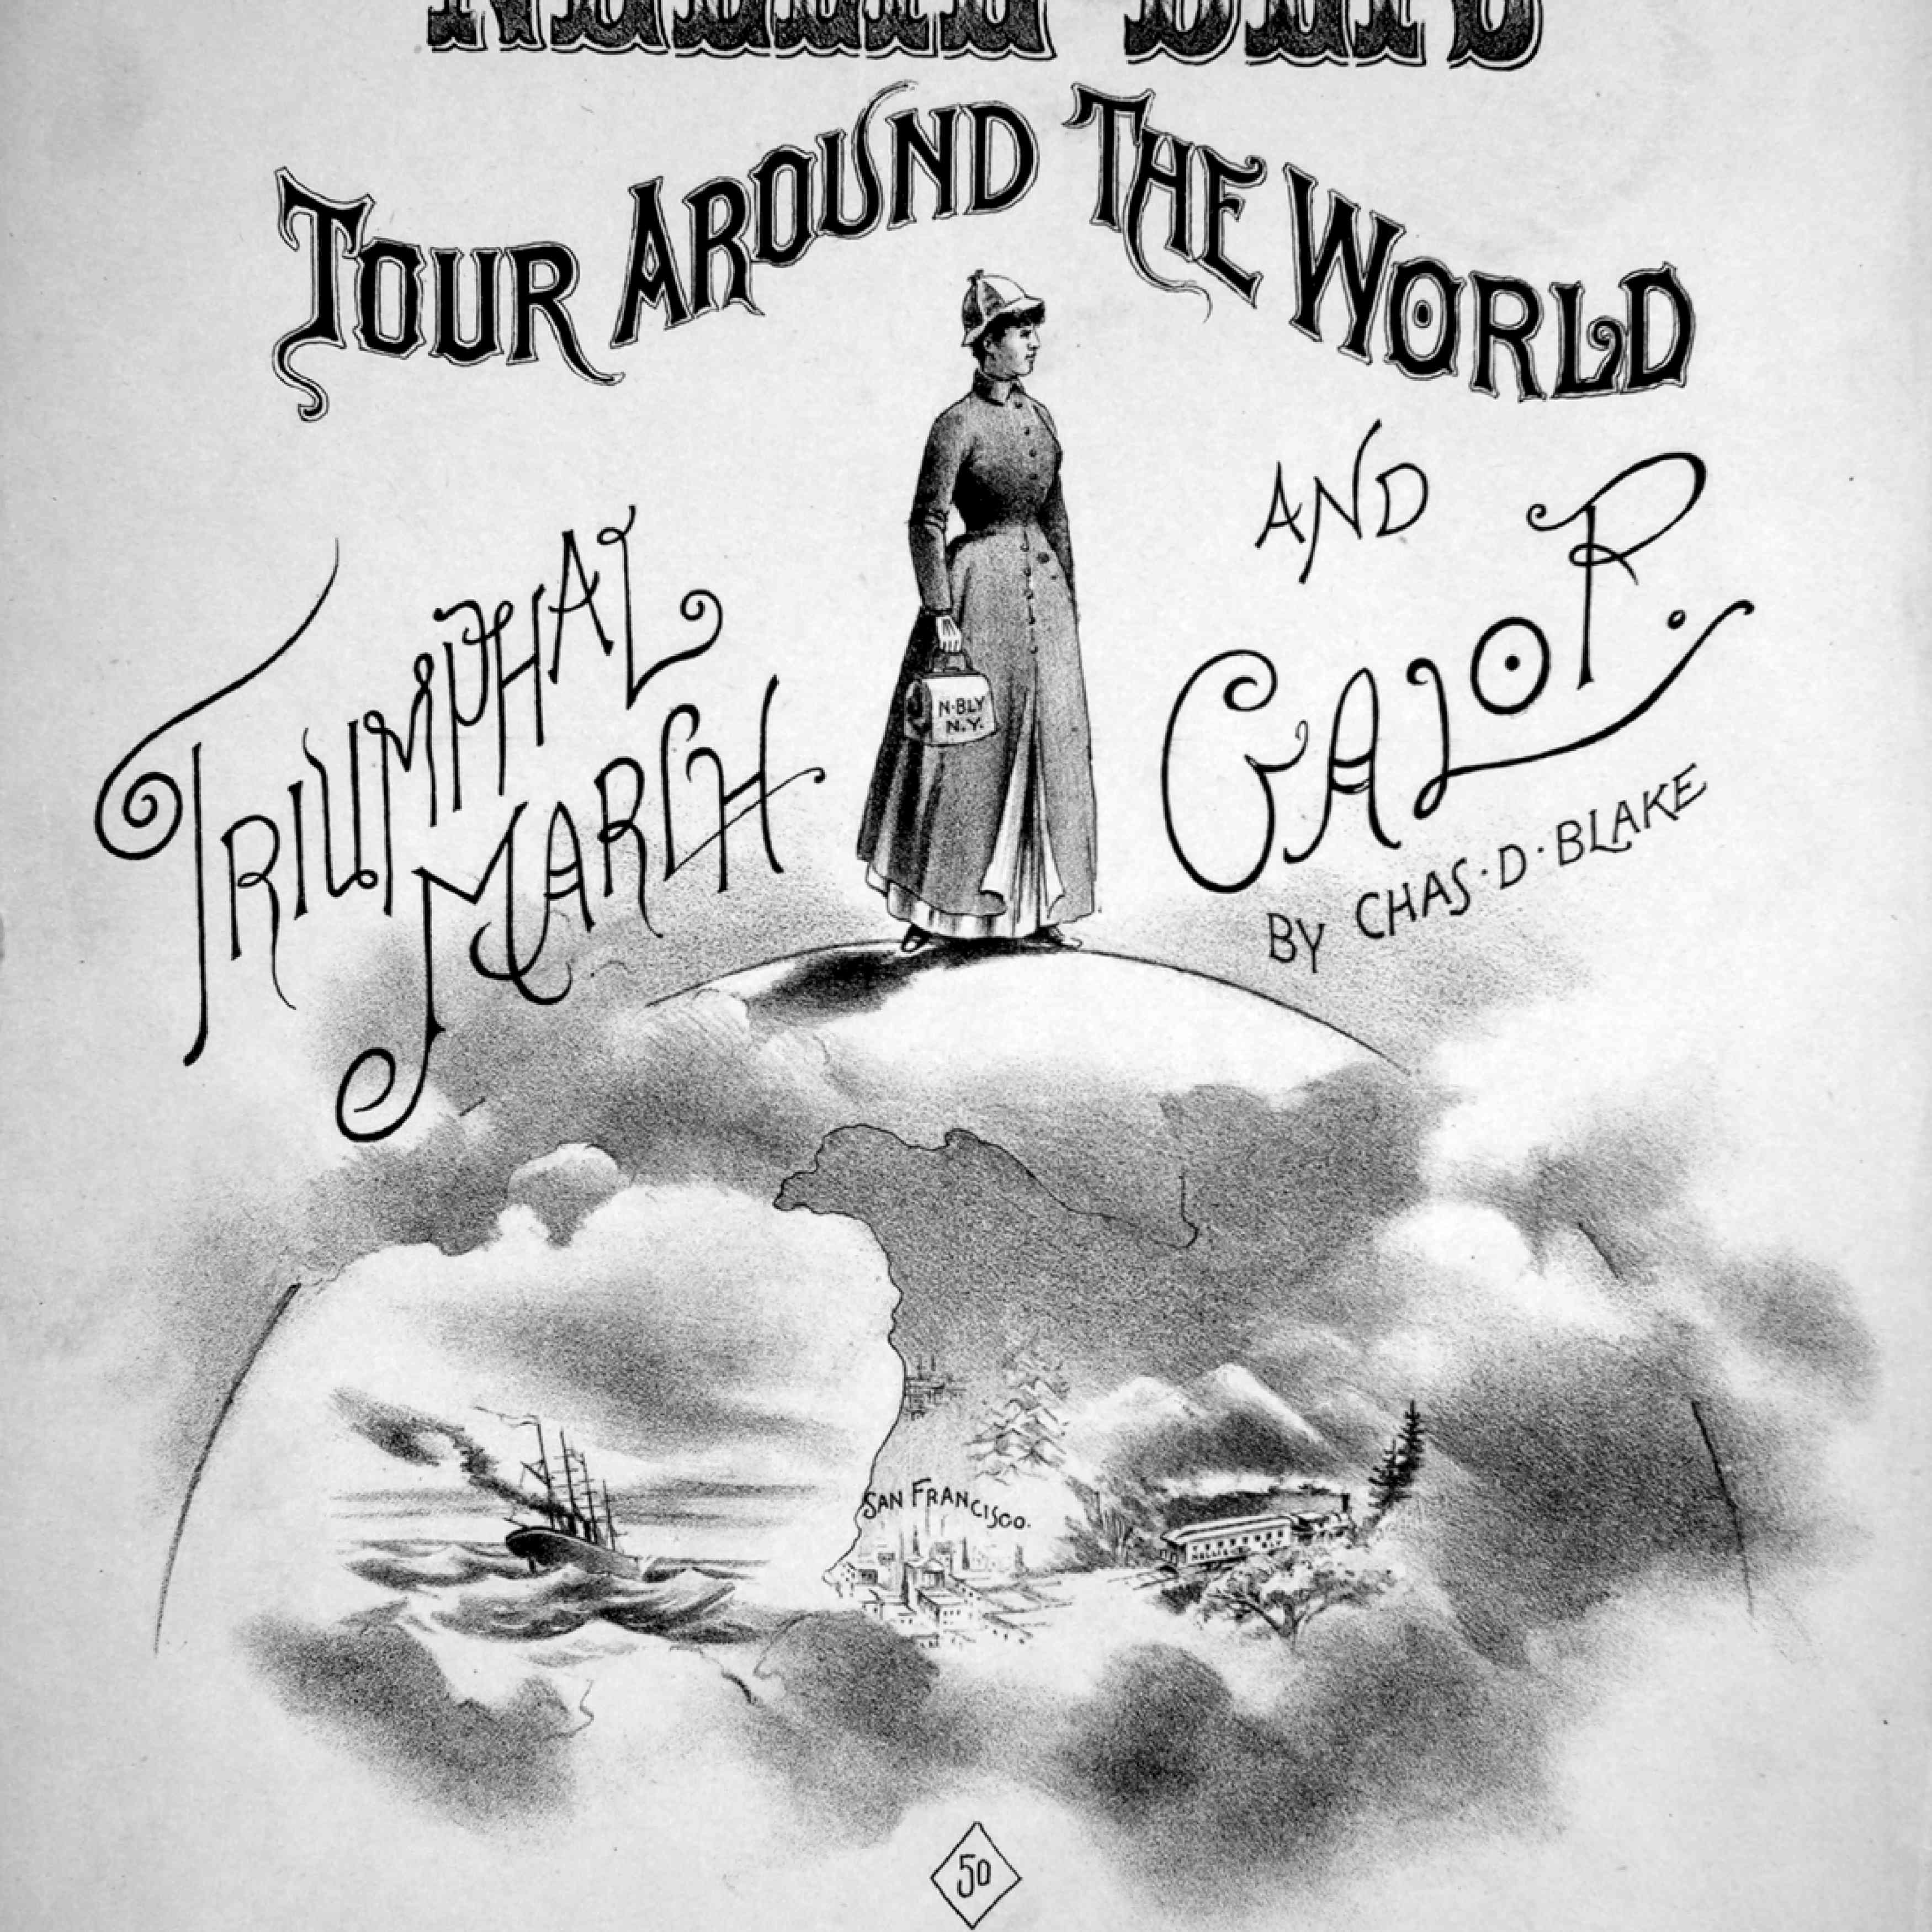 Nellie Bly's Tour Around The World Triumphal March And Galop